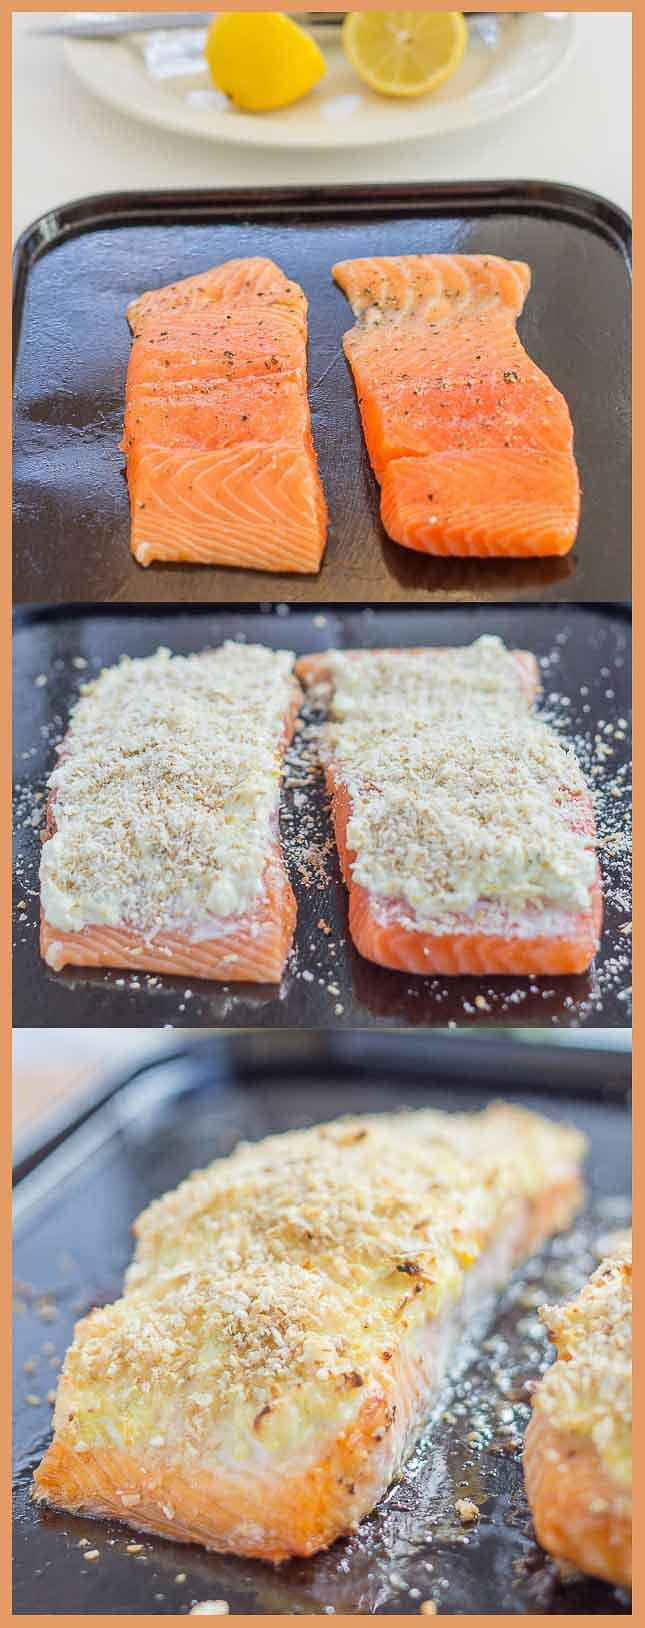 Collage of 3 pictures showing raw salmon then salmon topped with cream cheese then salmon topped with parmesan and oat ban.